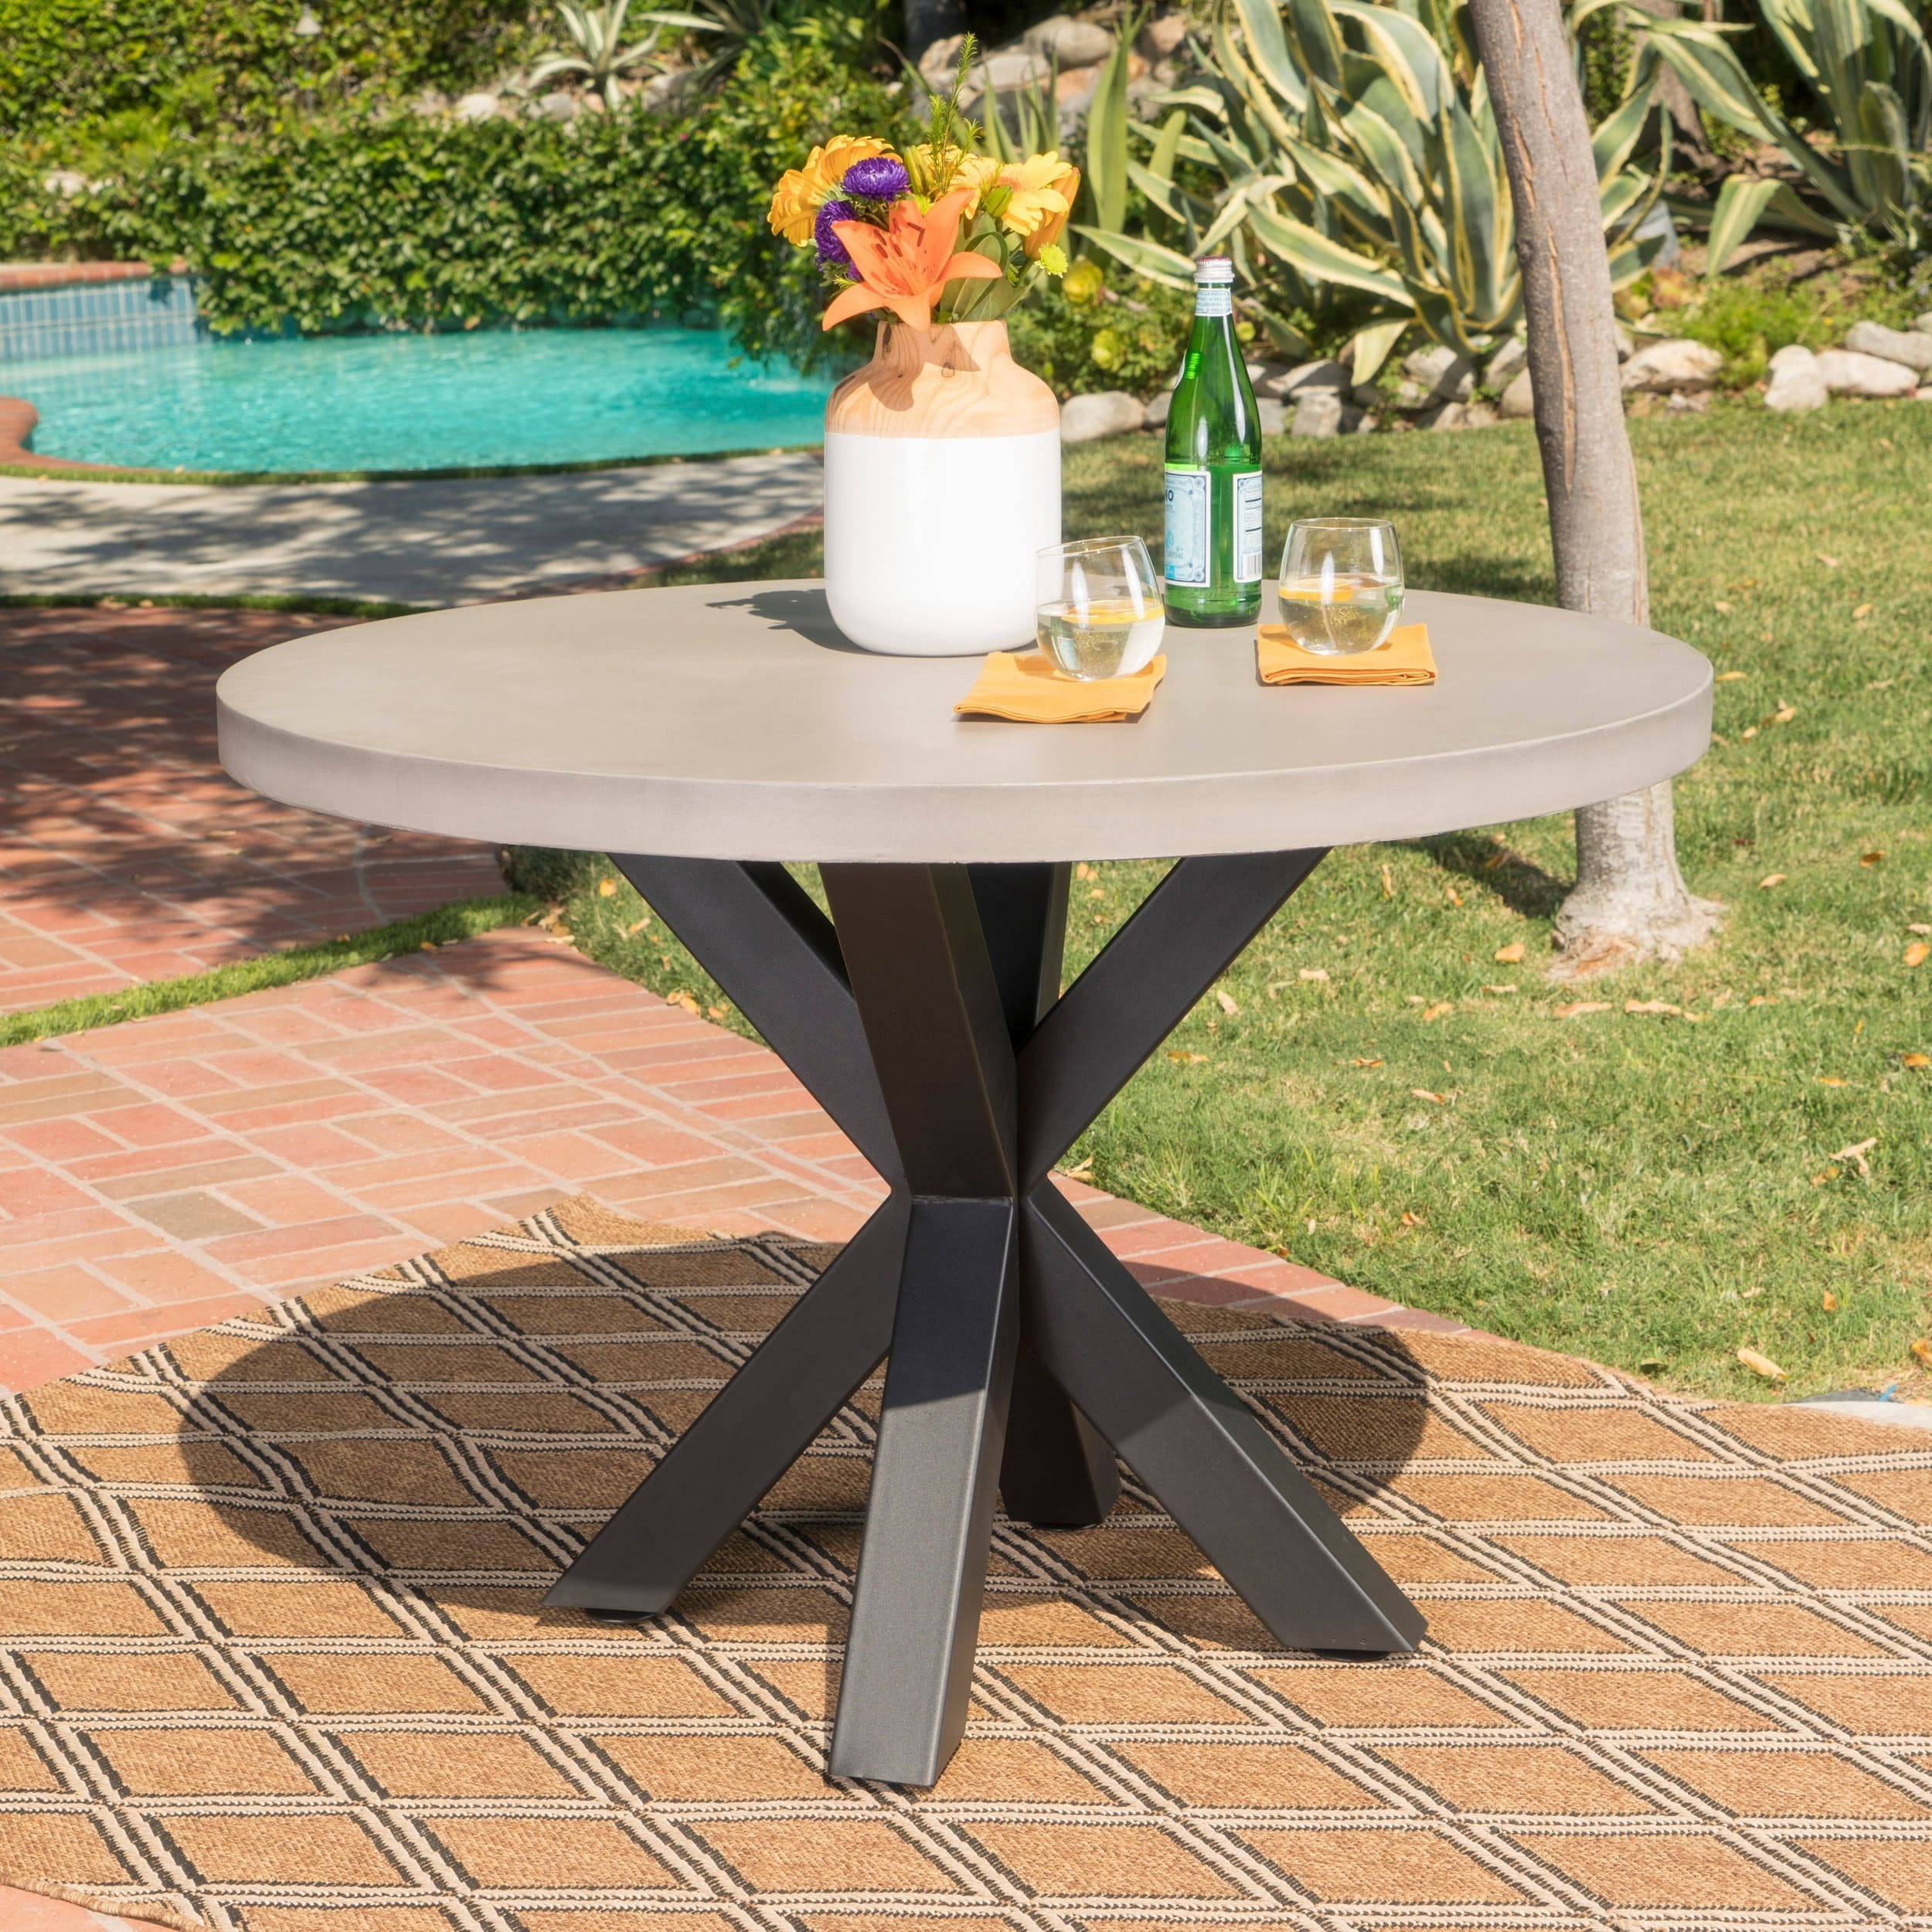 concrete kitchen table matte black faucet christopher knight home teague outdoor round light weight dining by